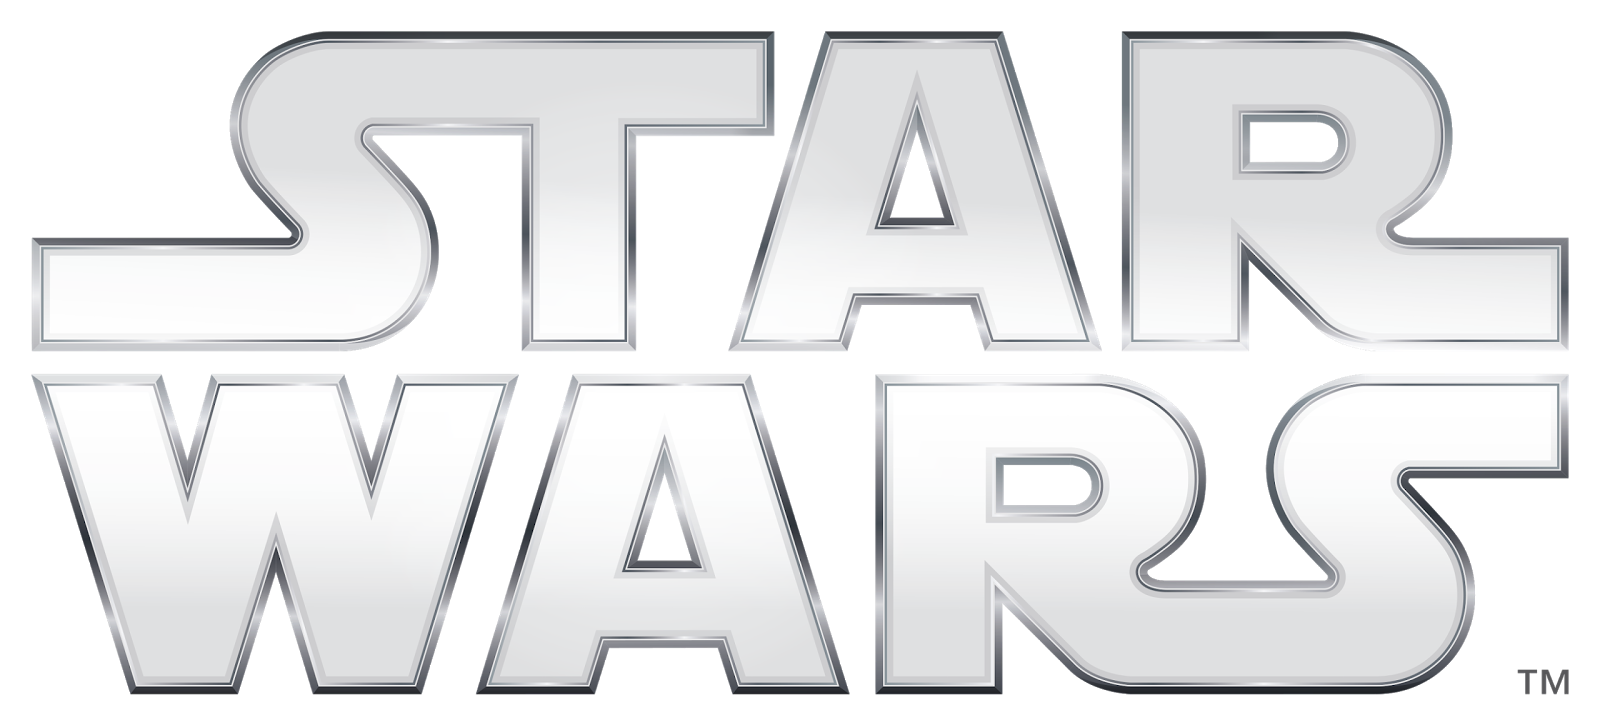 photograph regarding Printable Star Wars identify Star Wars Infants: Absolutely free Printable Toppers and Wrappers for